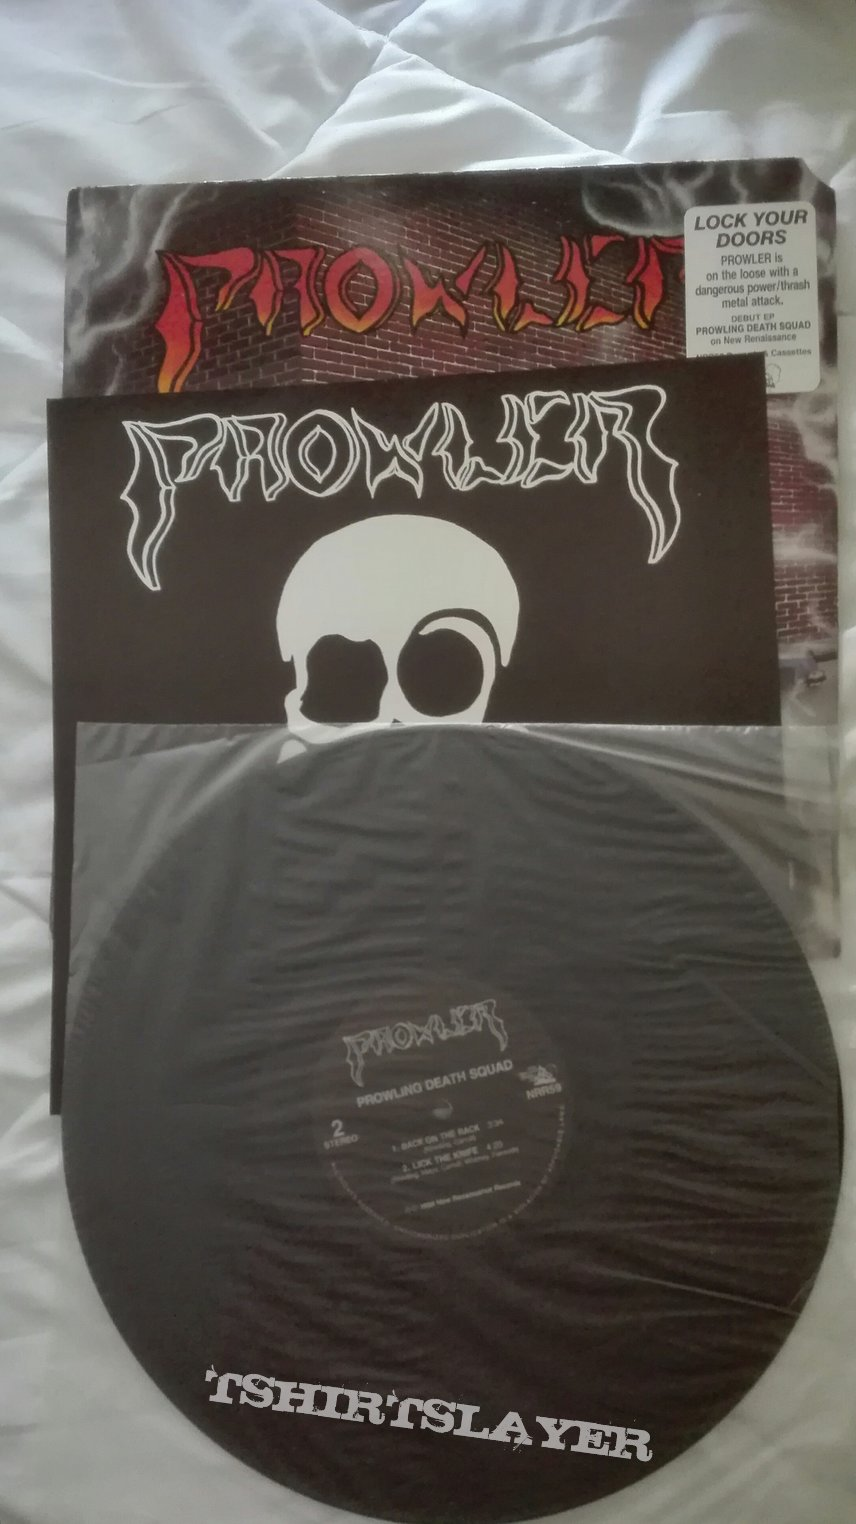 Prowler- Prowling death squad EP